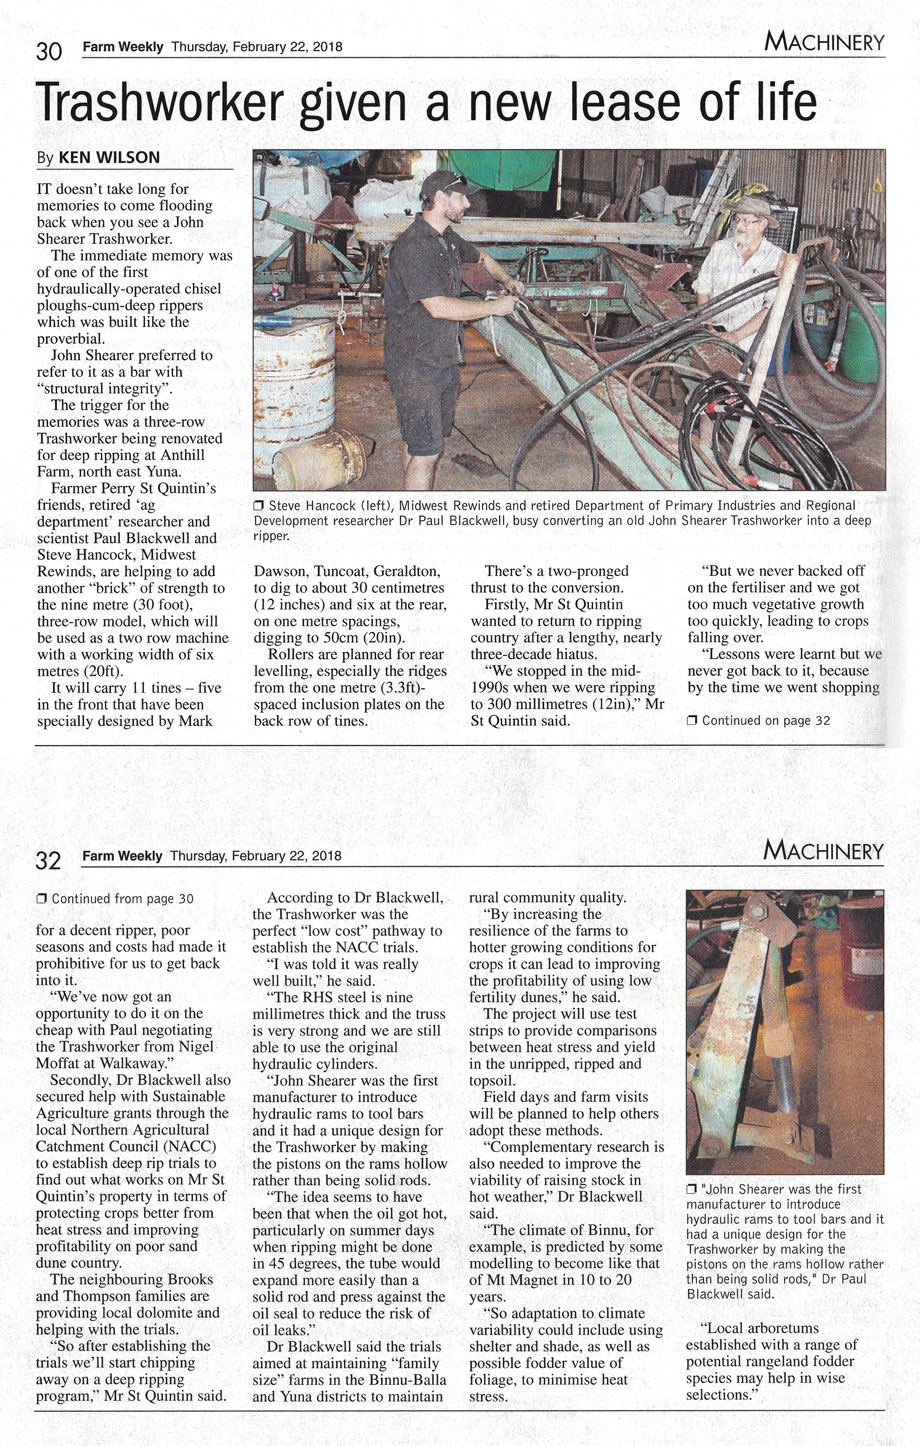 Article from Farm Weekly titled Trashworker given new lease of life